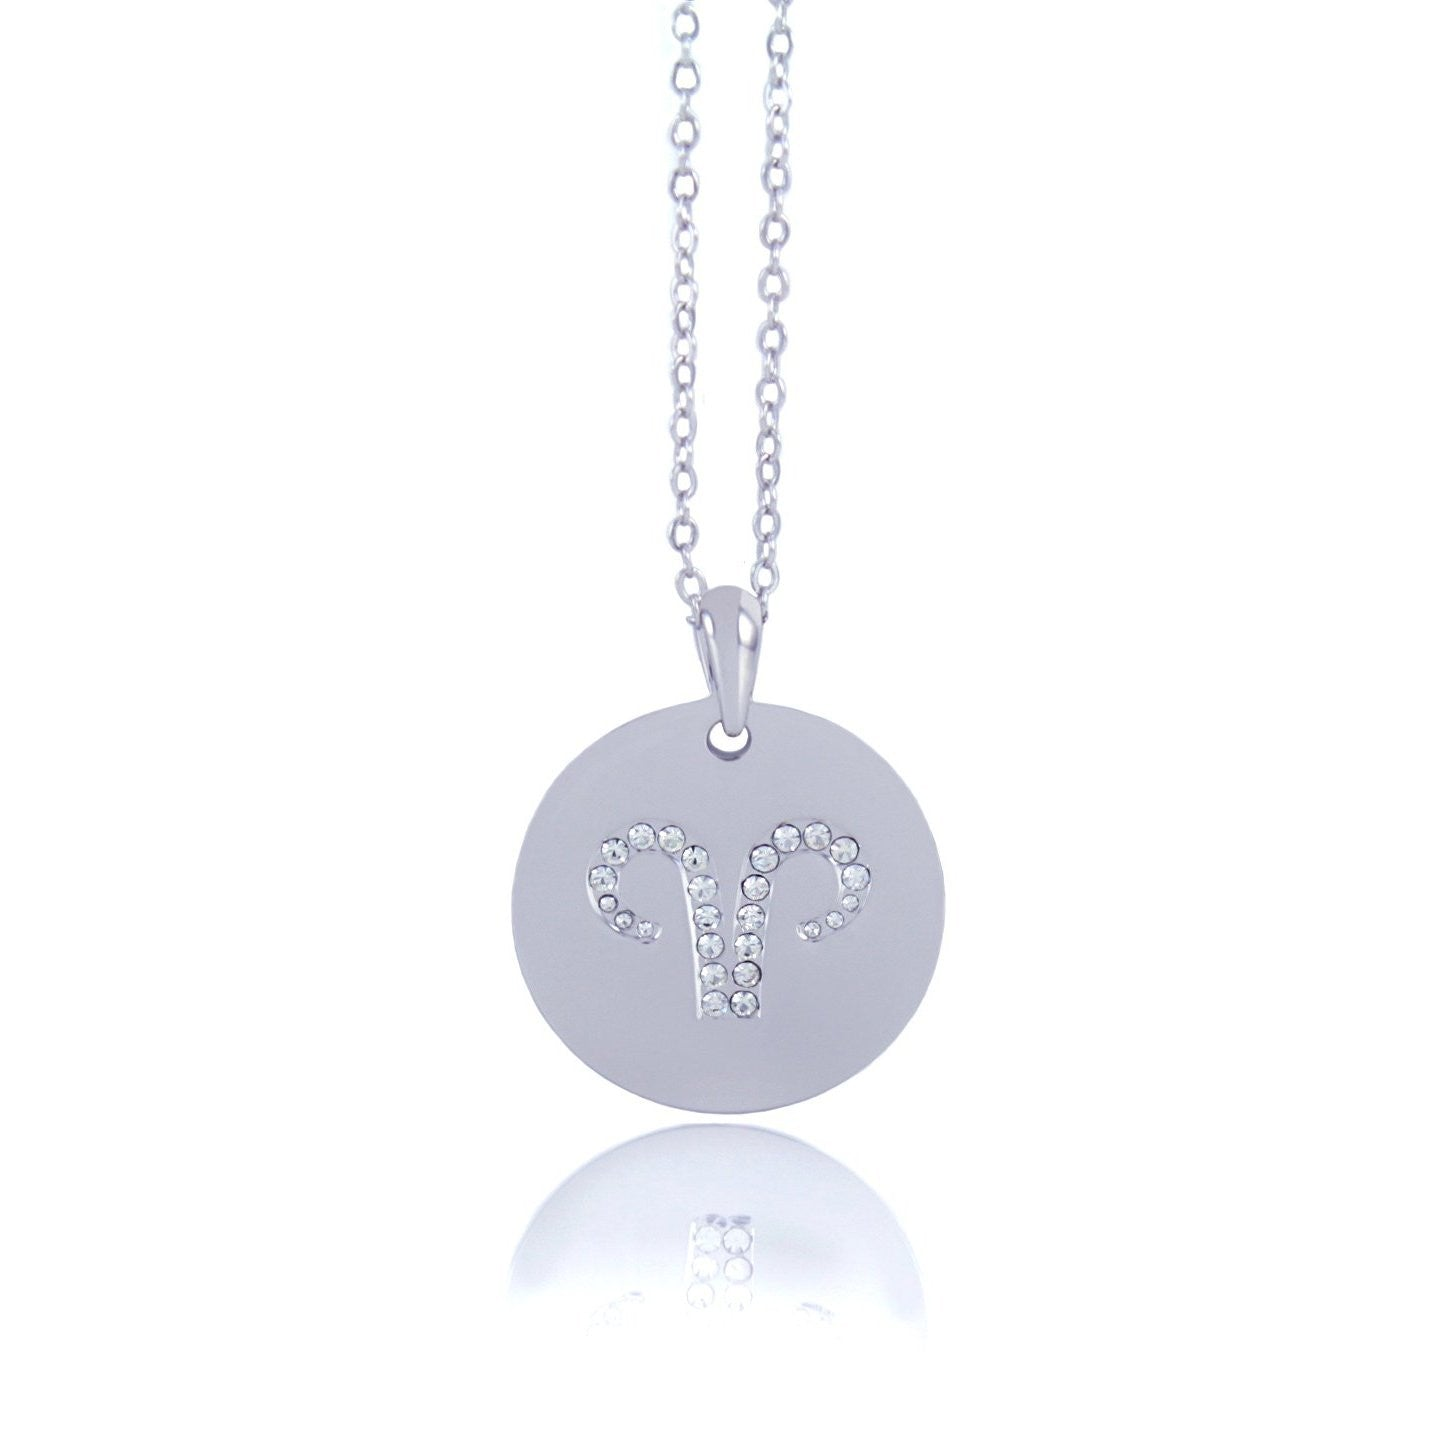 Horoscope Dainty Necklace